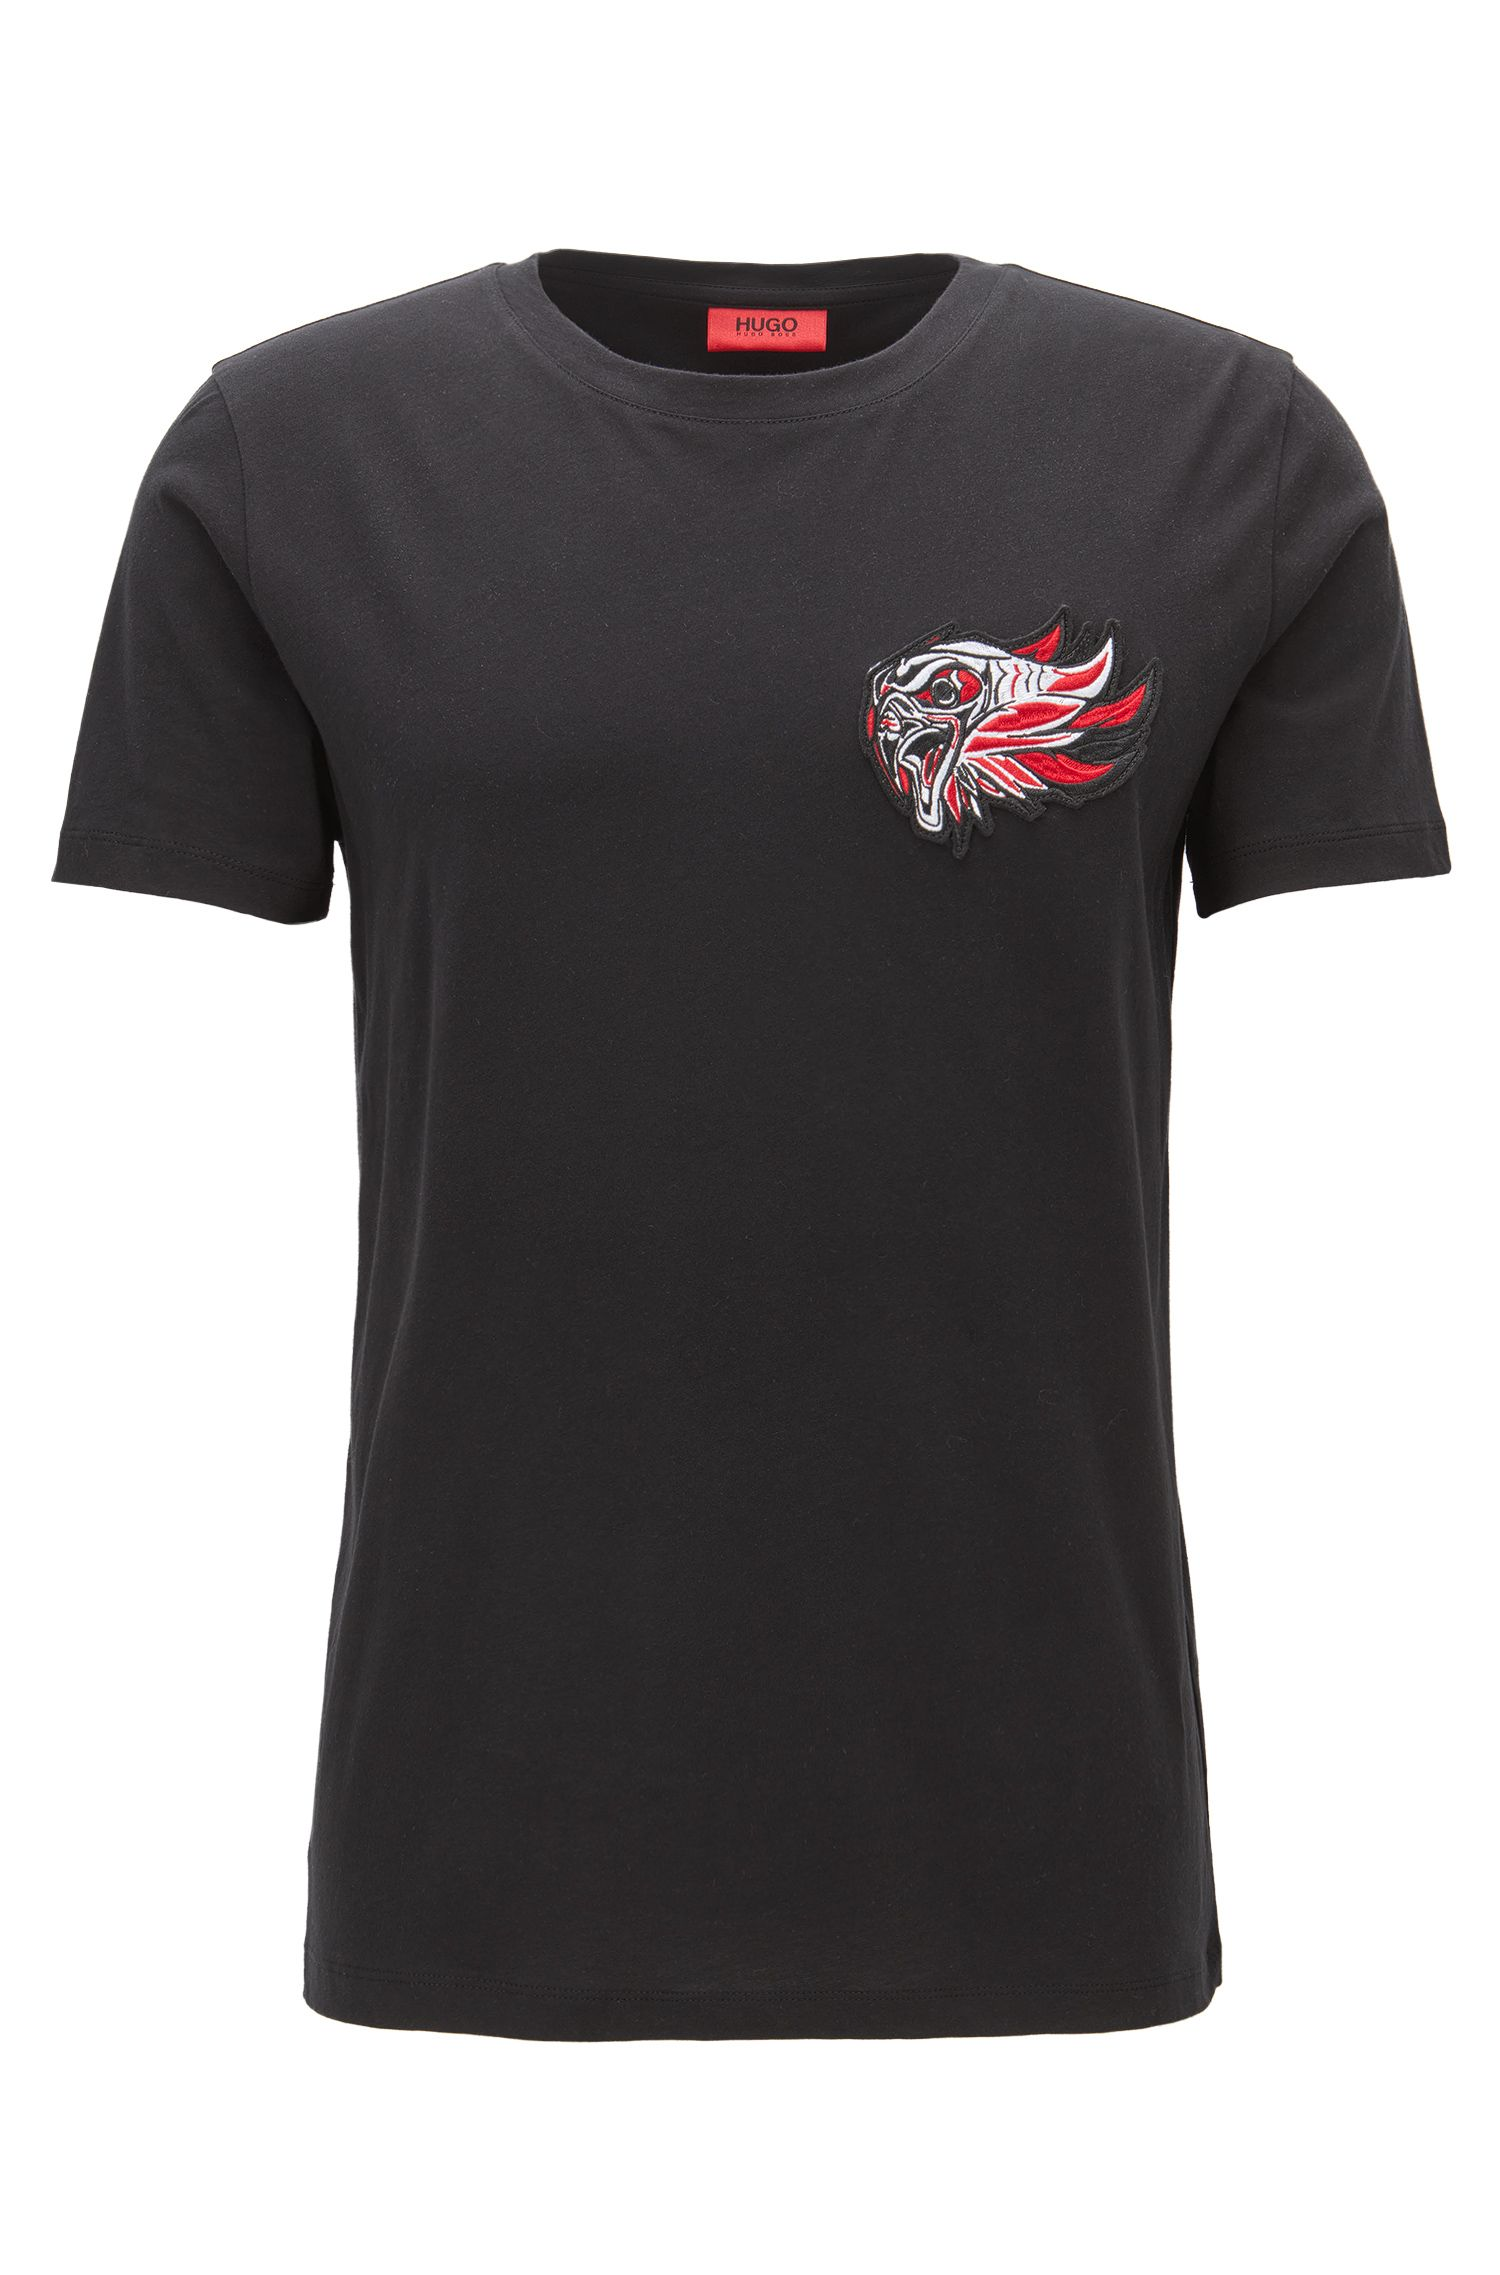 Relaxed-fit jersey T-shirt with embroidered patch